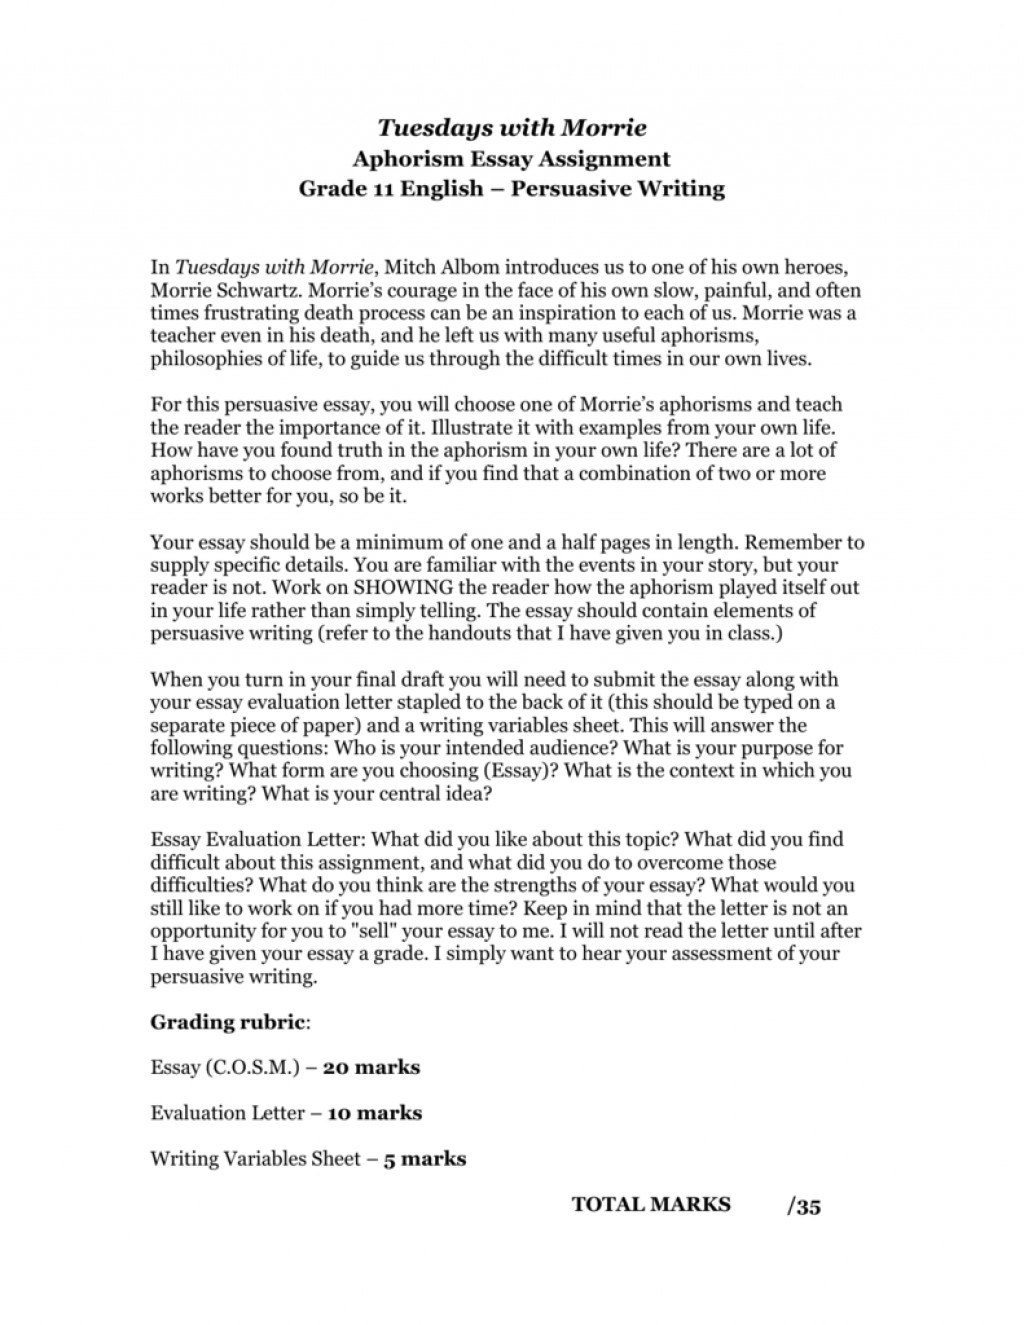 006 Tuesdays With Morrie Essay 008907930 1 Striking Topics Writing Prompts Paper Large